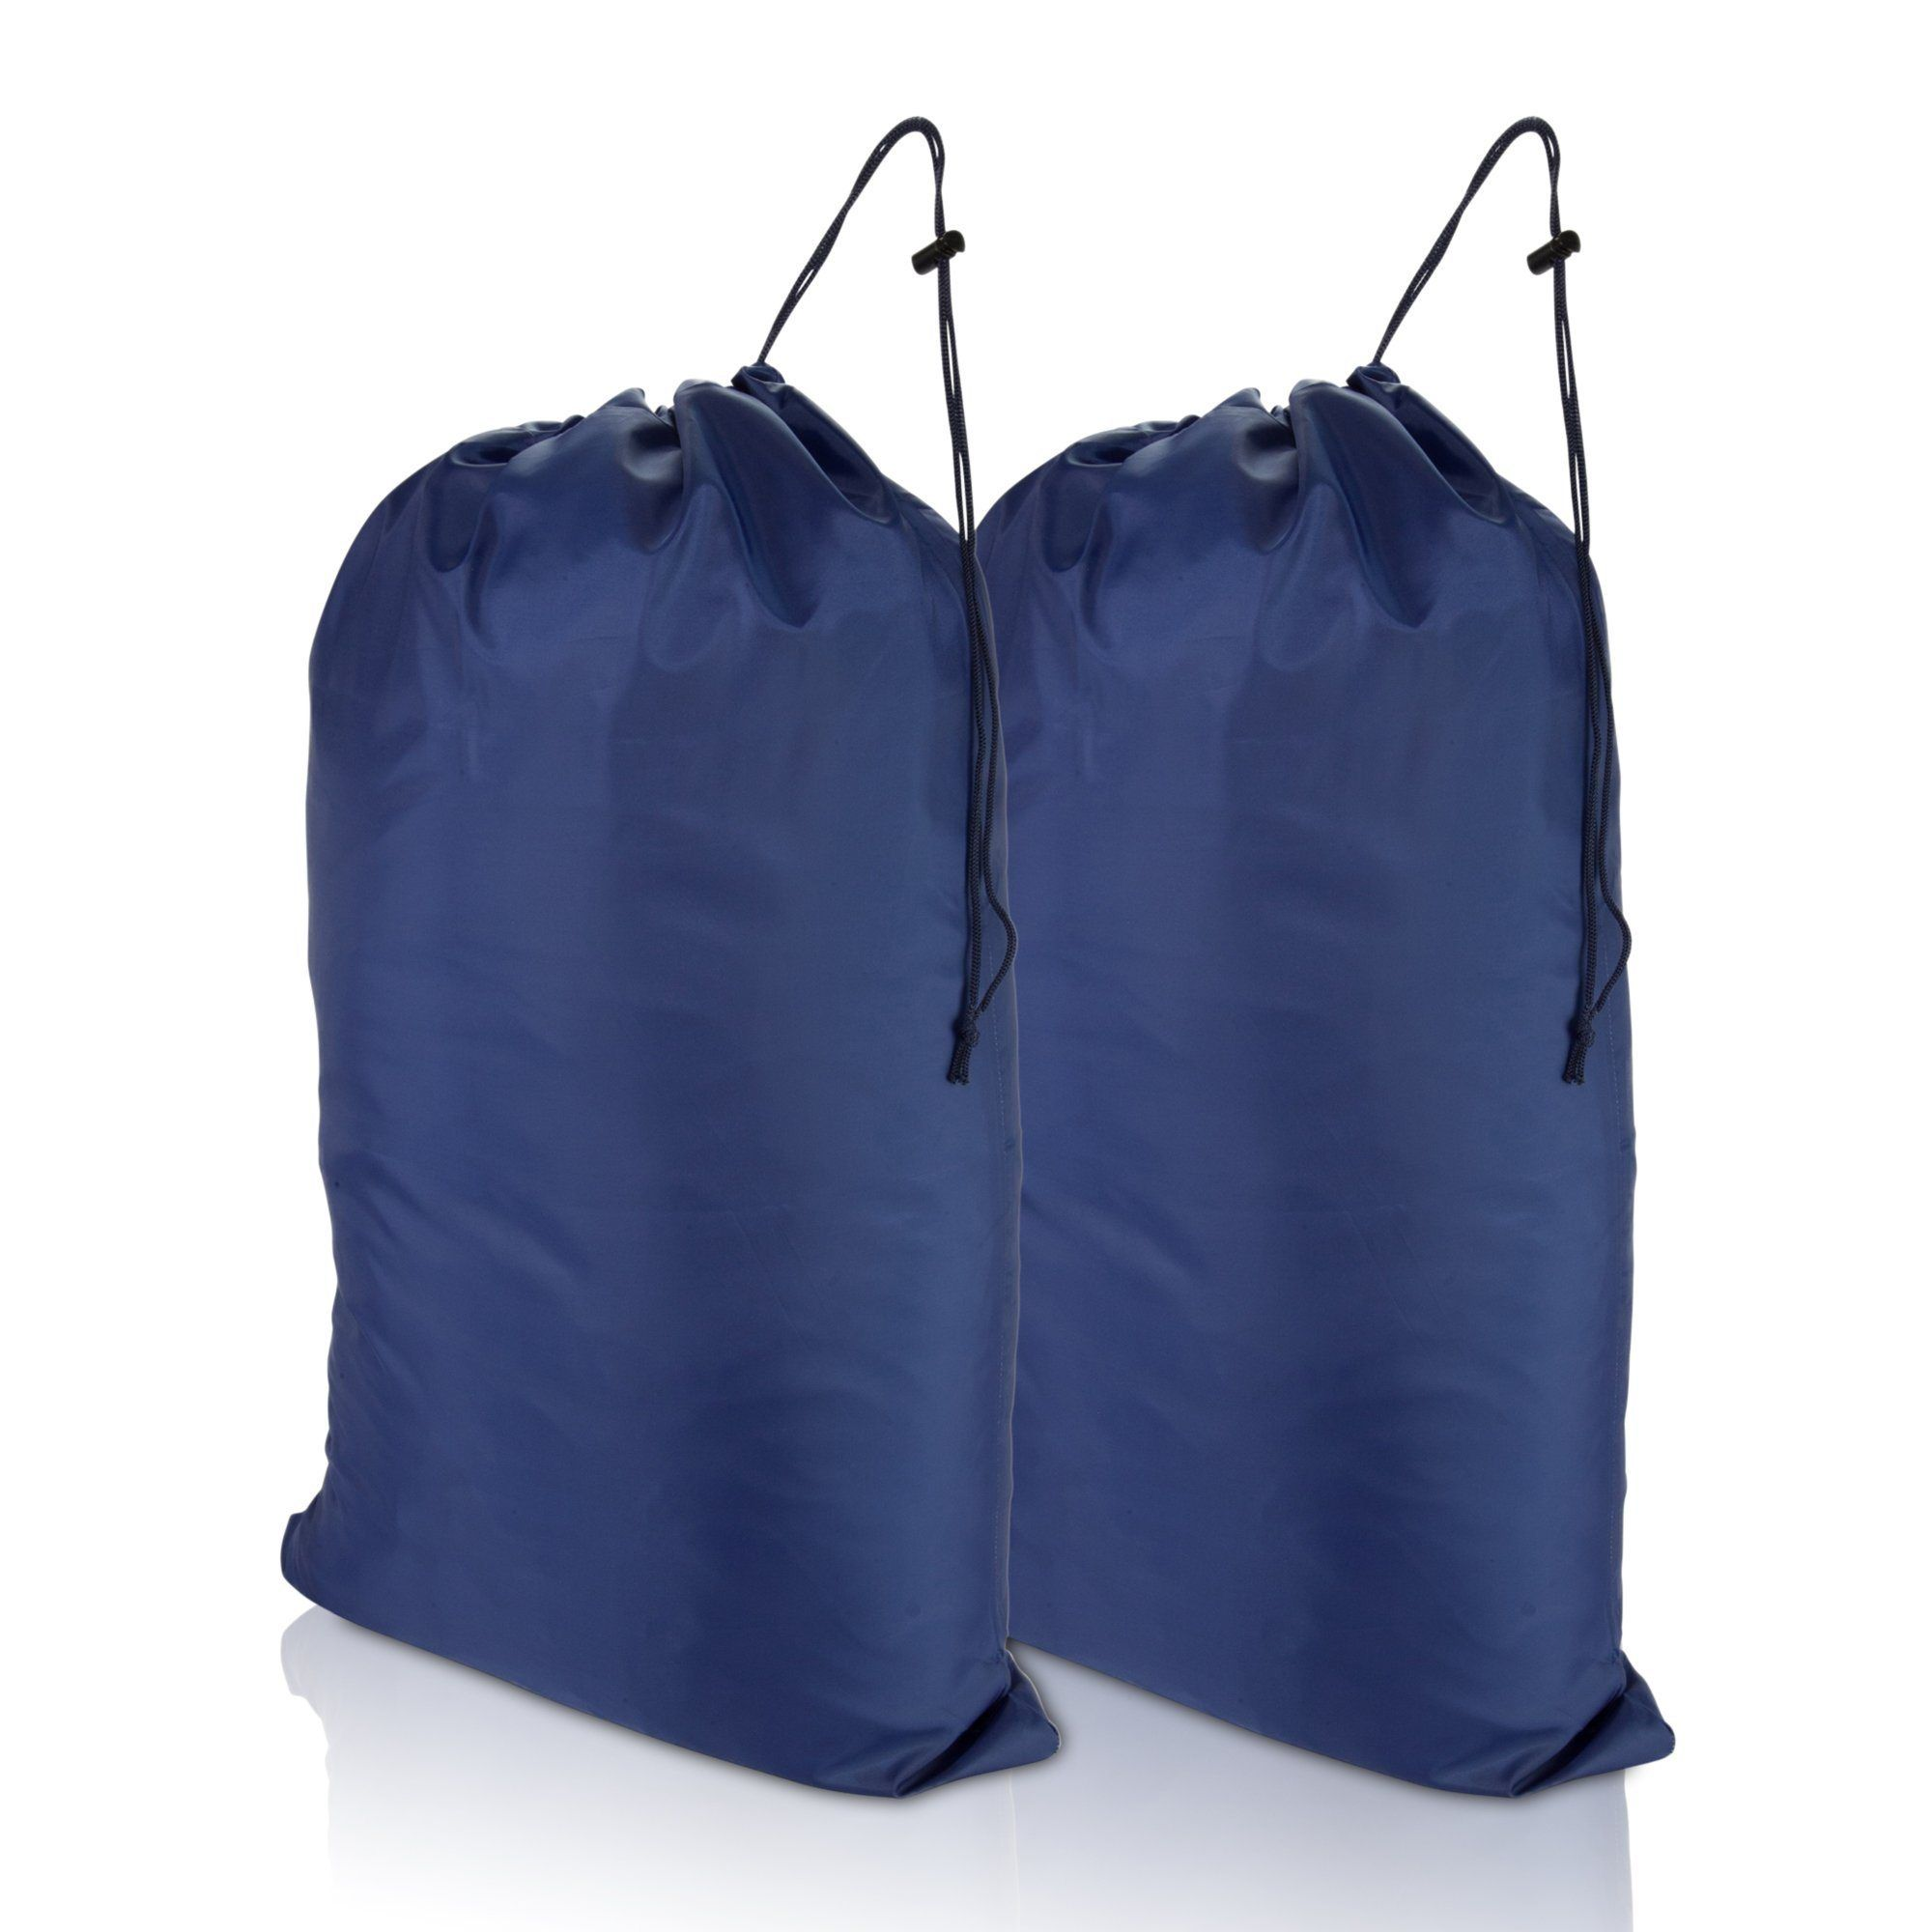 Large Laundry Bag 2 Pack In 2019 Products Bags Laundry Packing